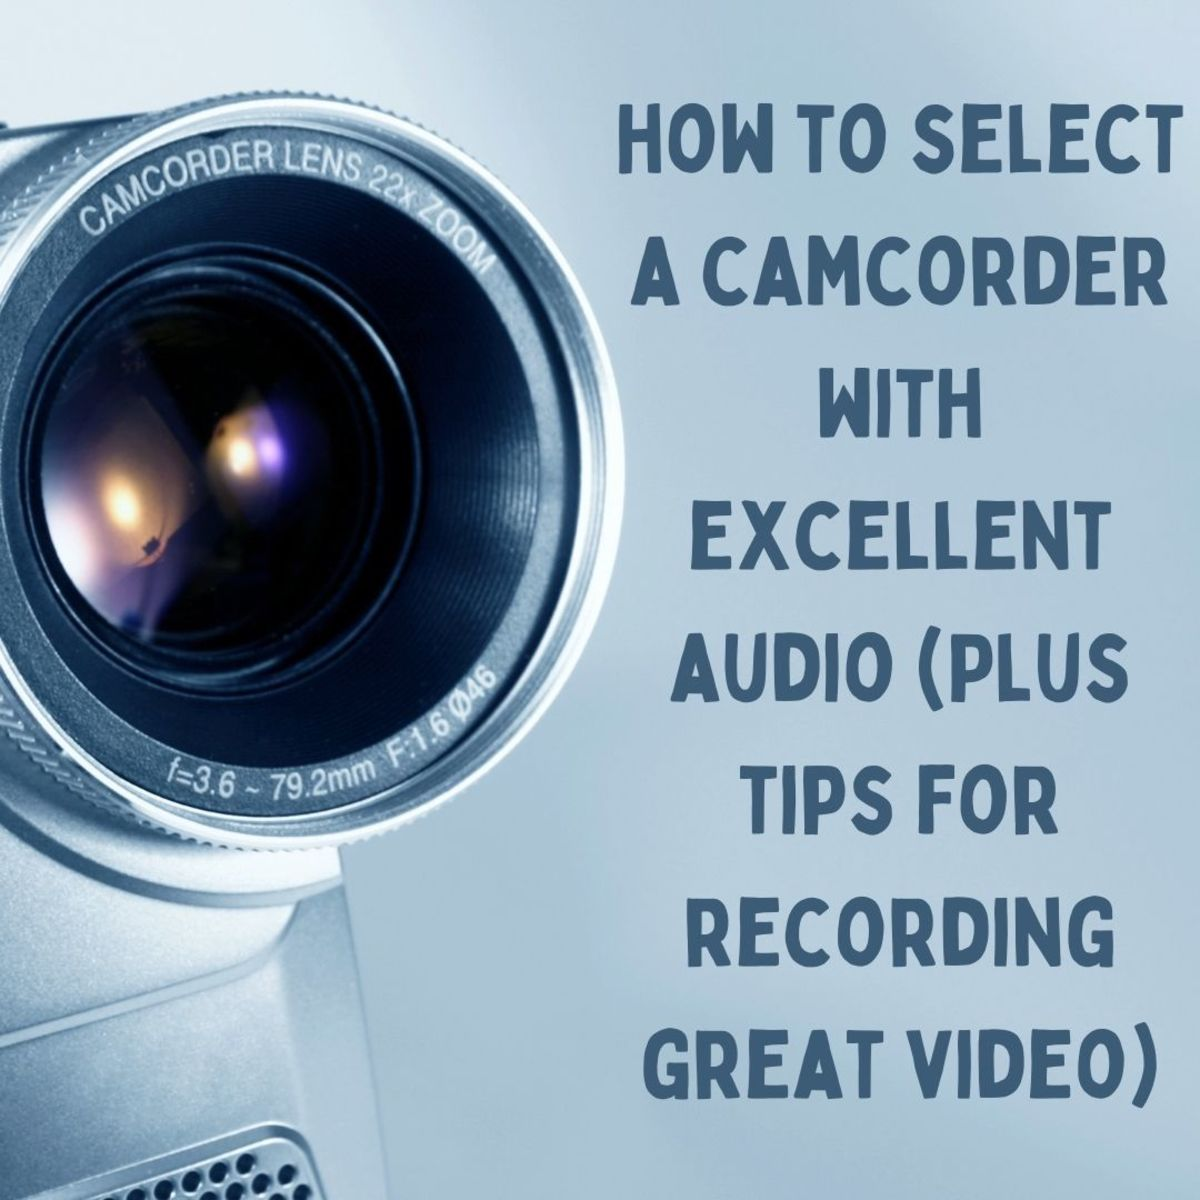 Tips for selecting a camcorder and recording videos with great audio